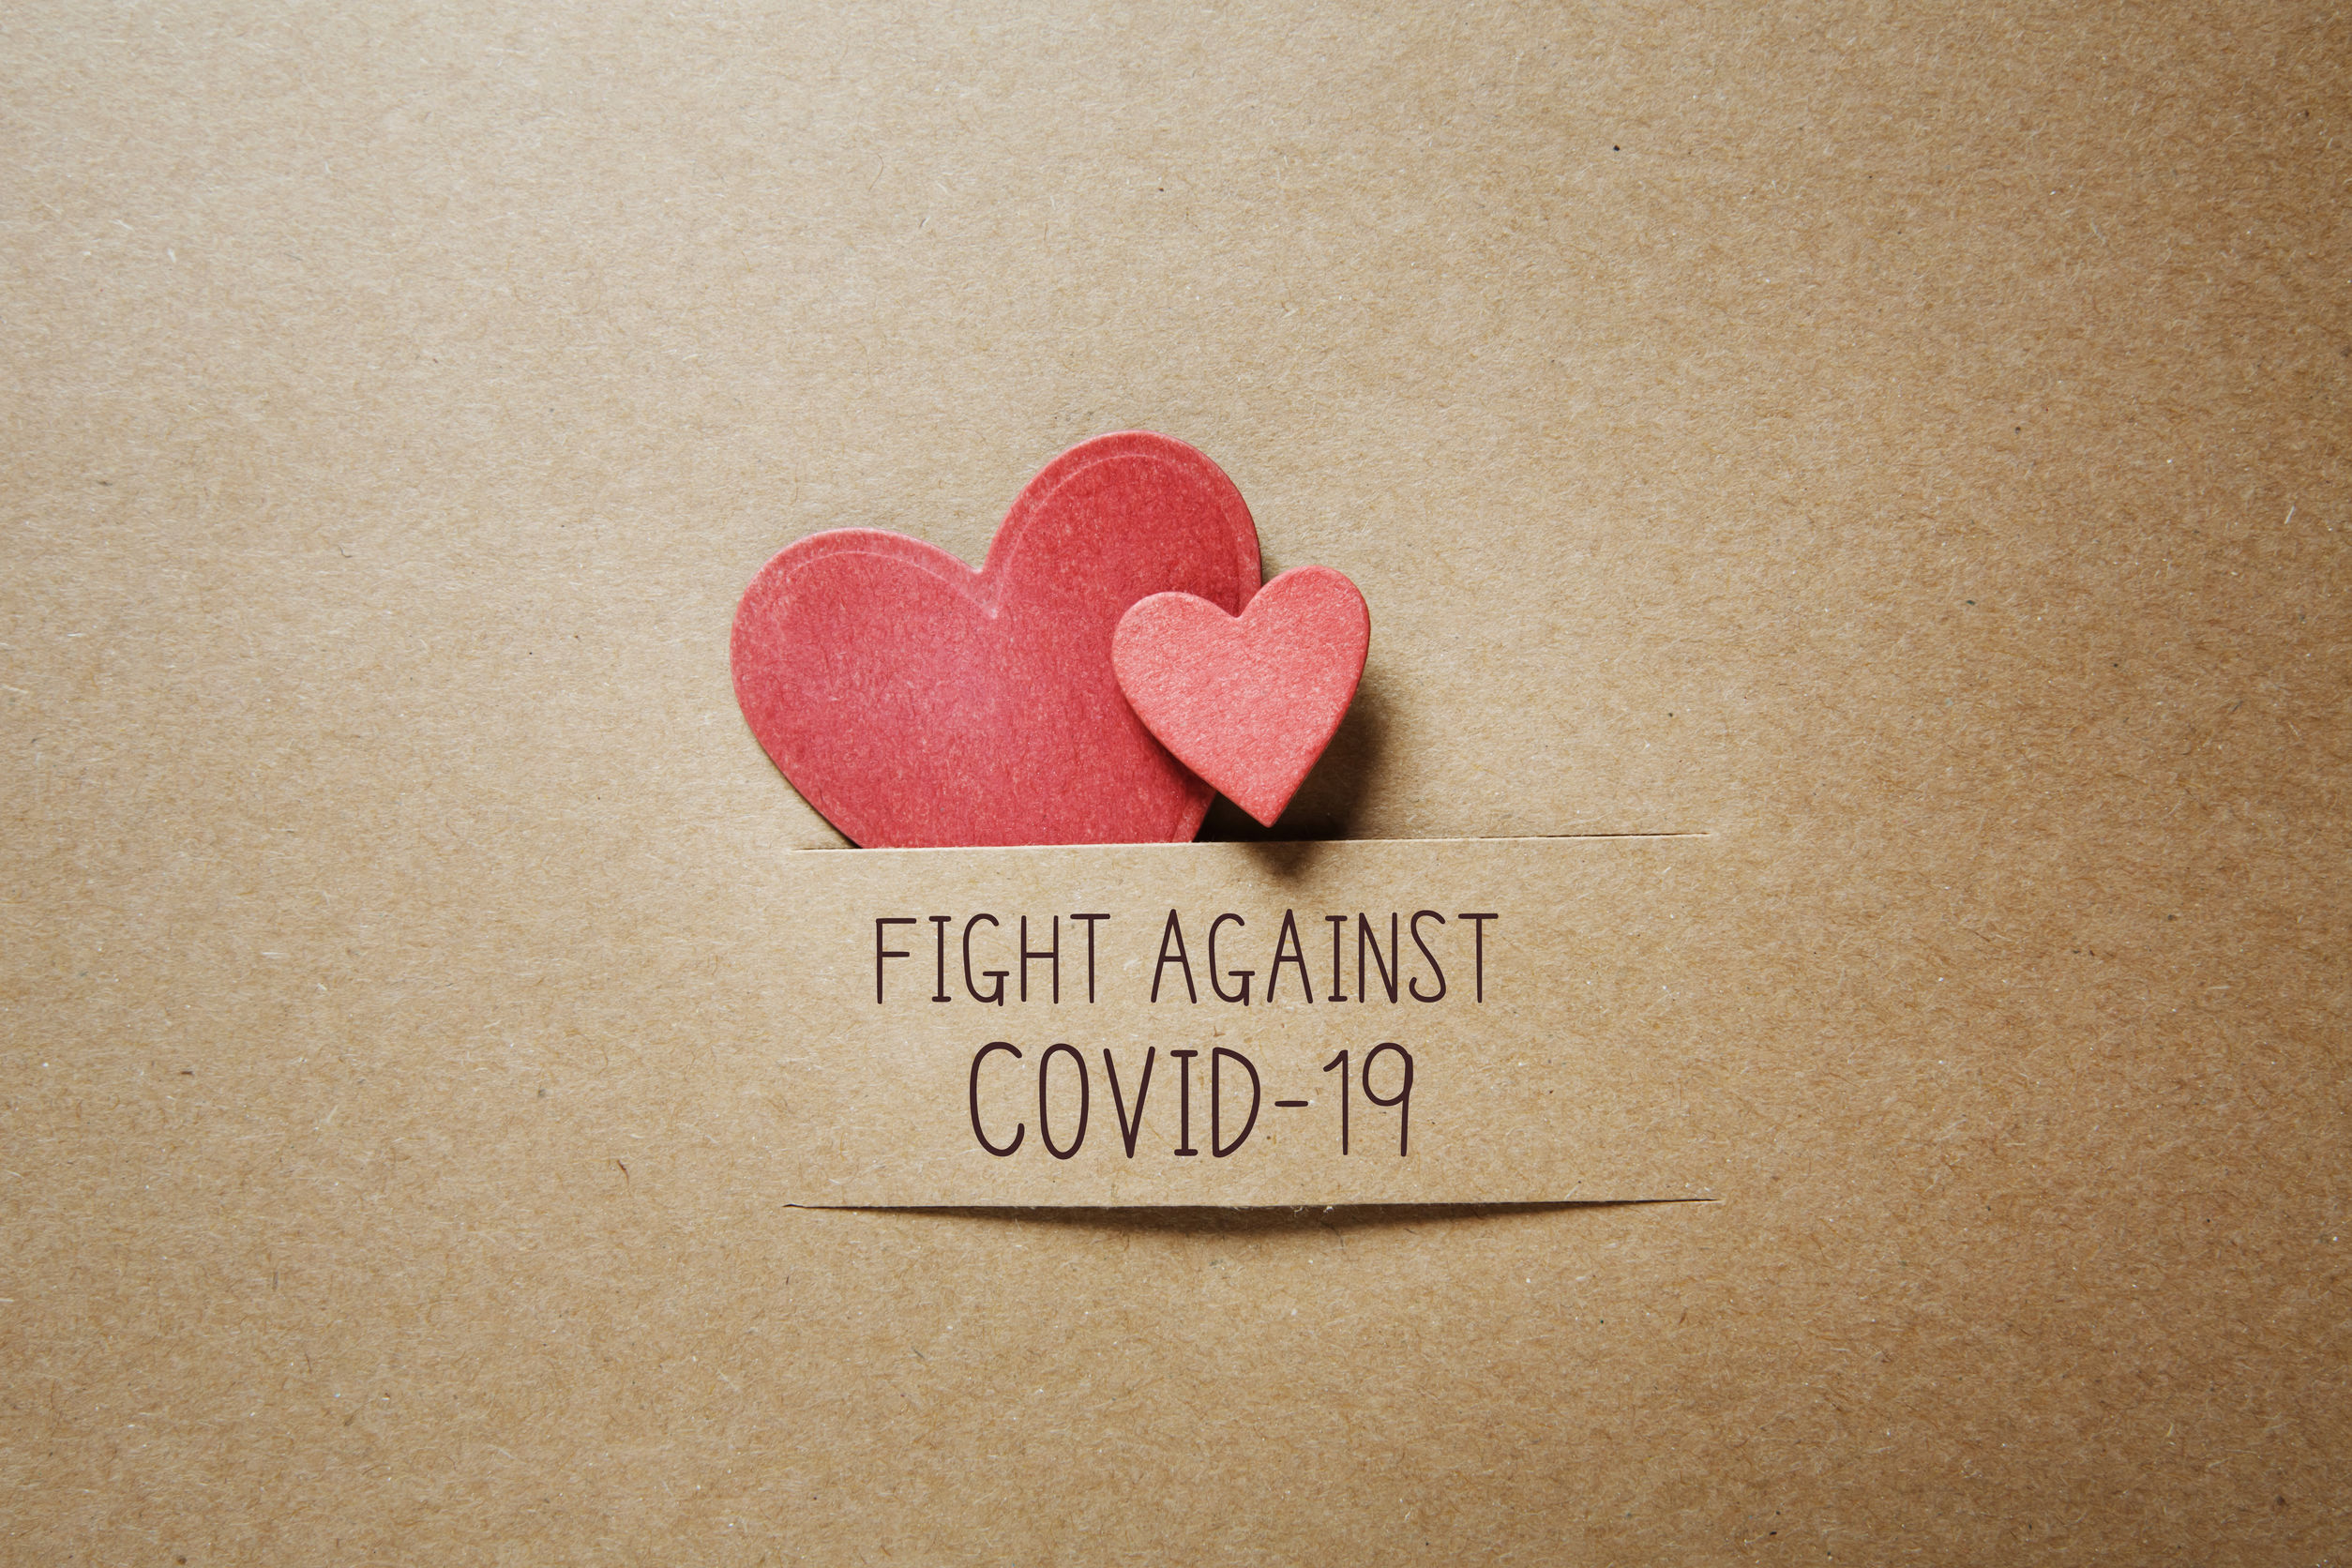 Fight Against Covid-19 message with handmade small paper hearts